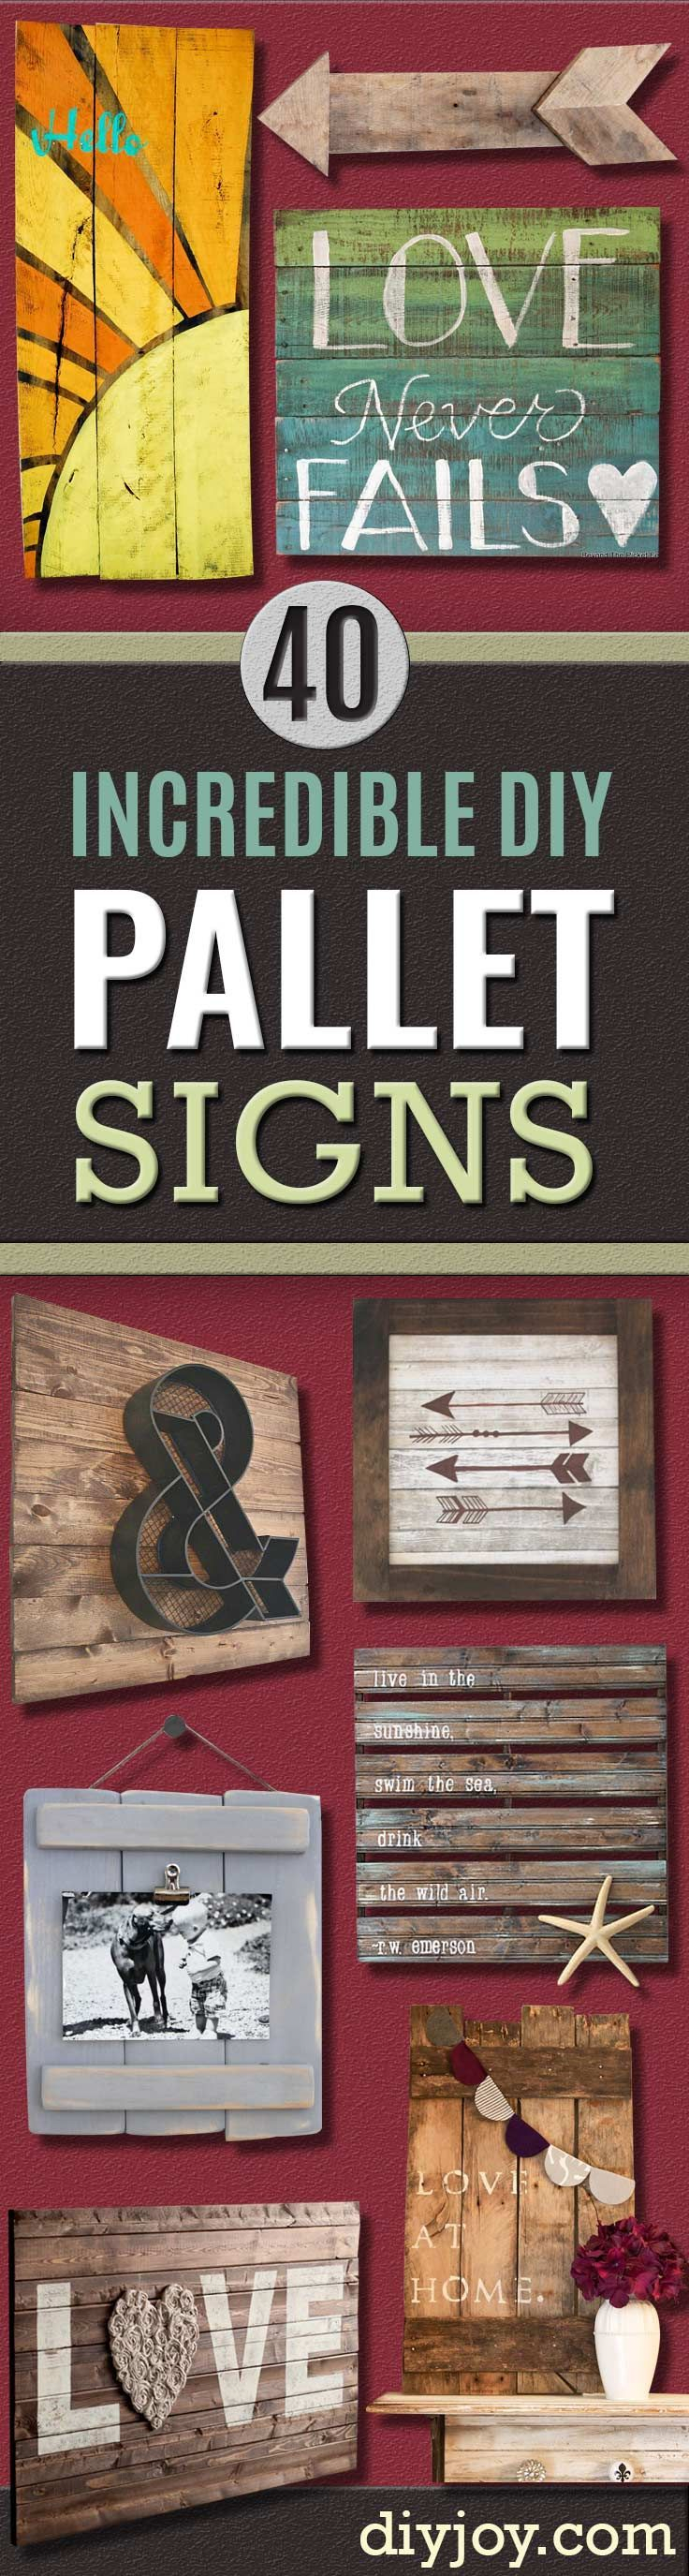 40 Incredible DIY Pallet Signs   Page 8 Of 8   DIY Joy DIY Pallet Sign Ideas    Cool Homemade Wall Art Ideas And Pallet Signs For Bedroom, Living Room,  ... Part 55